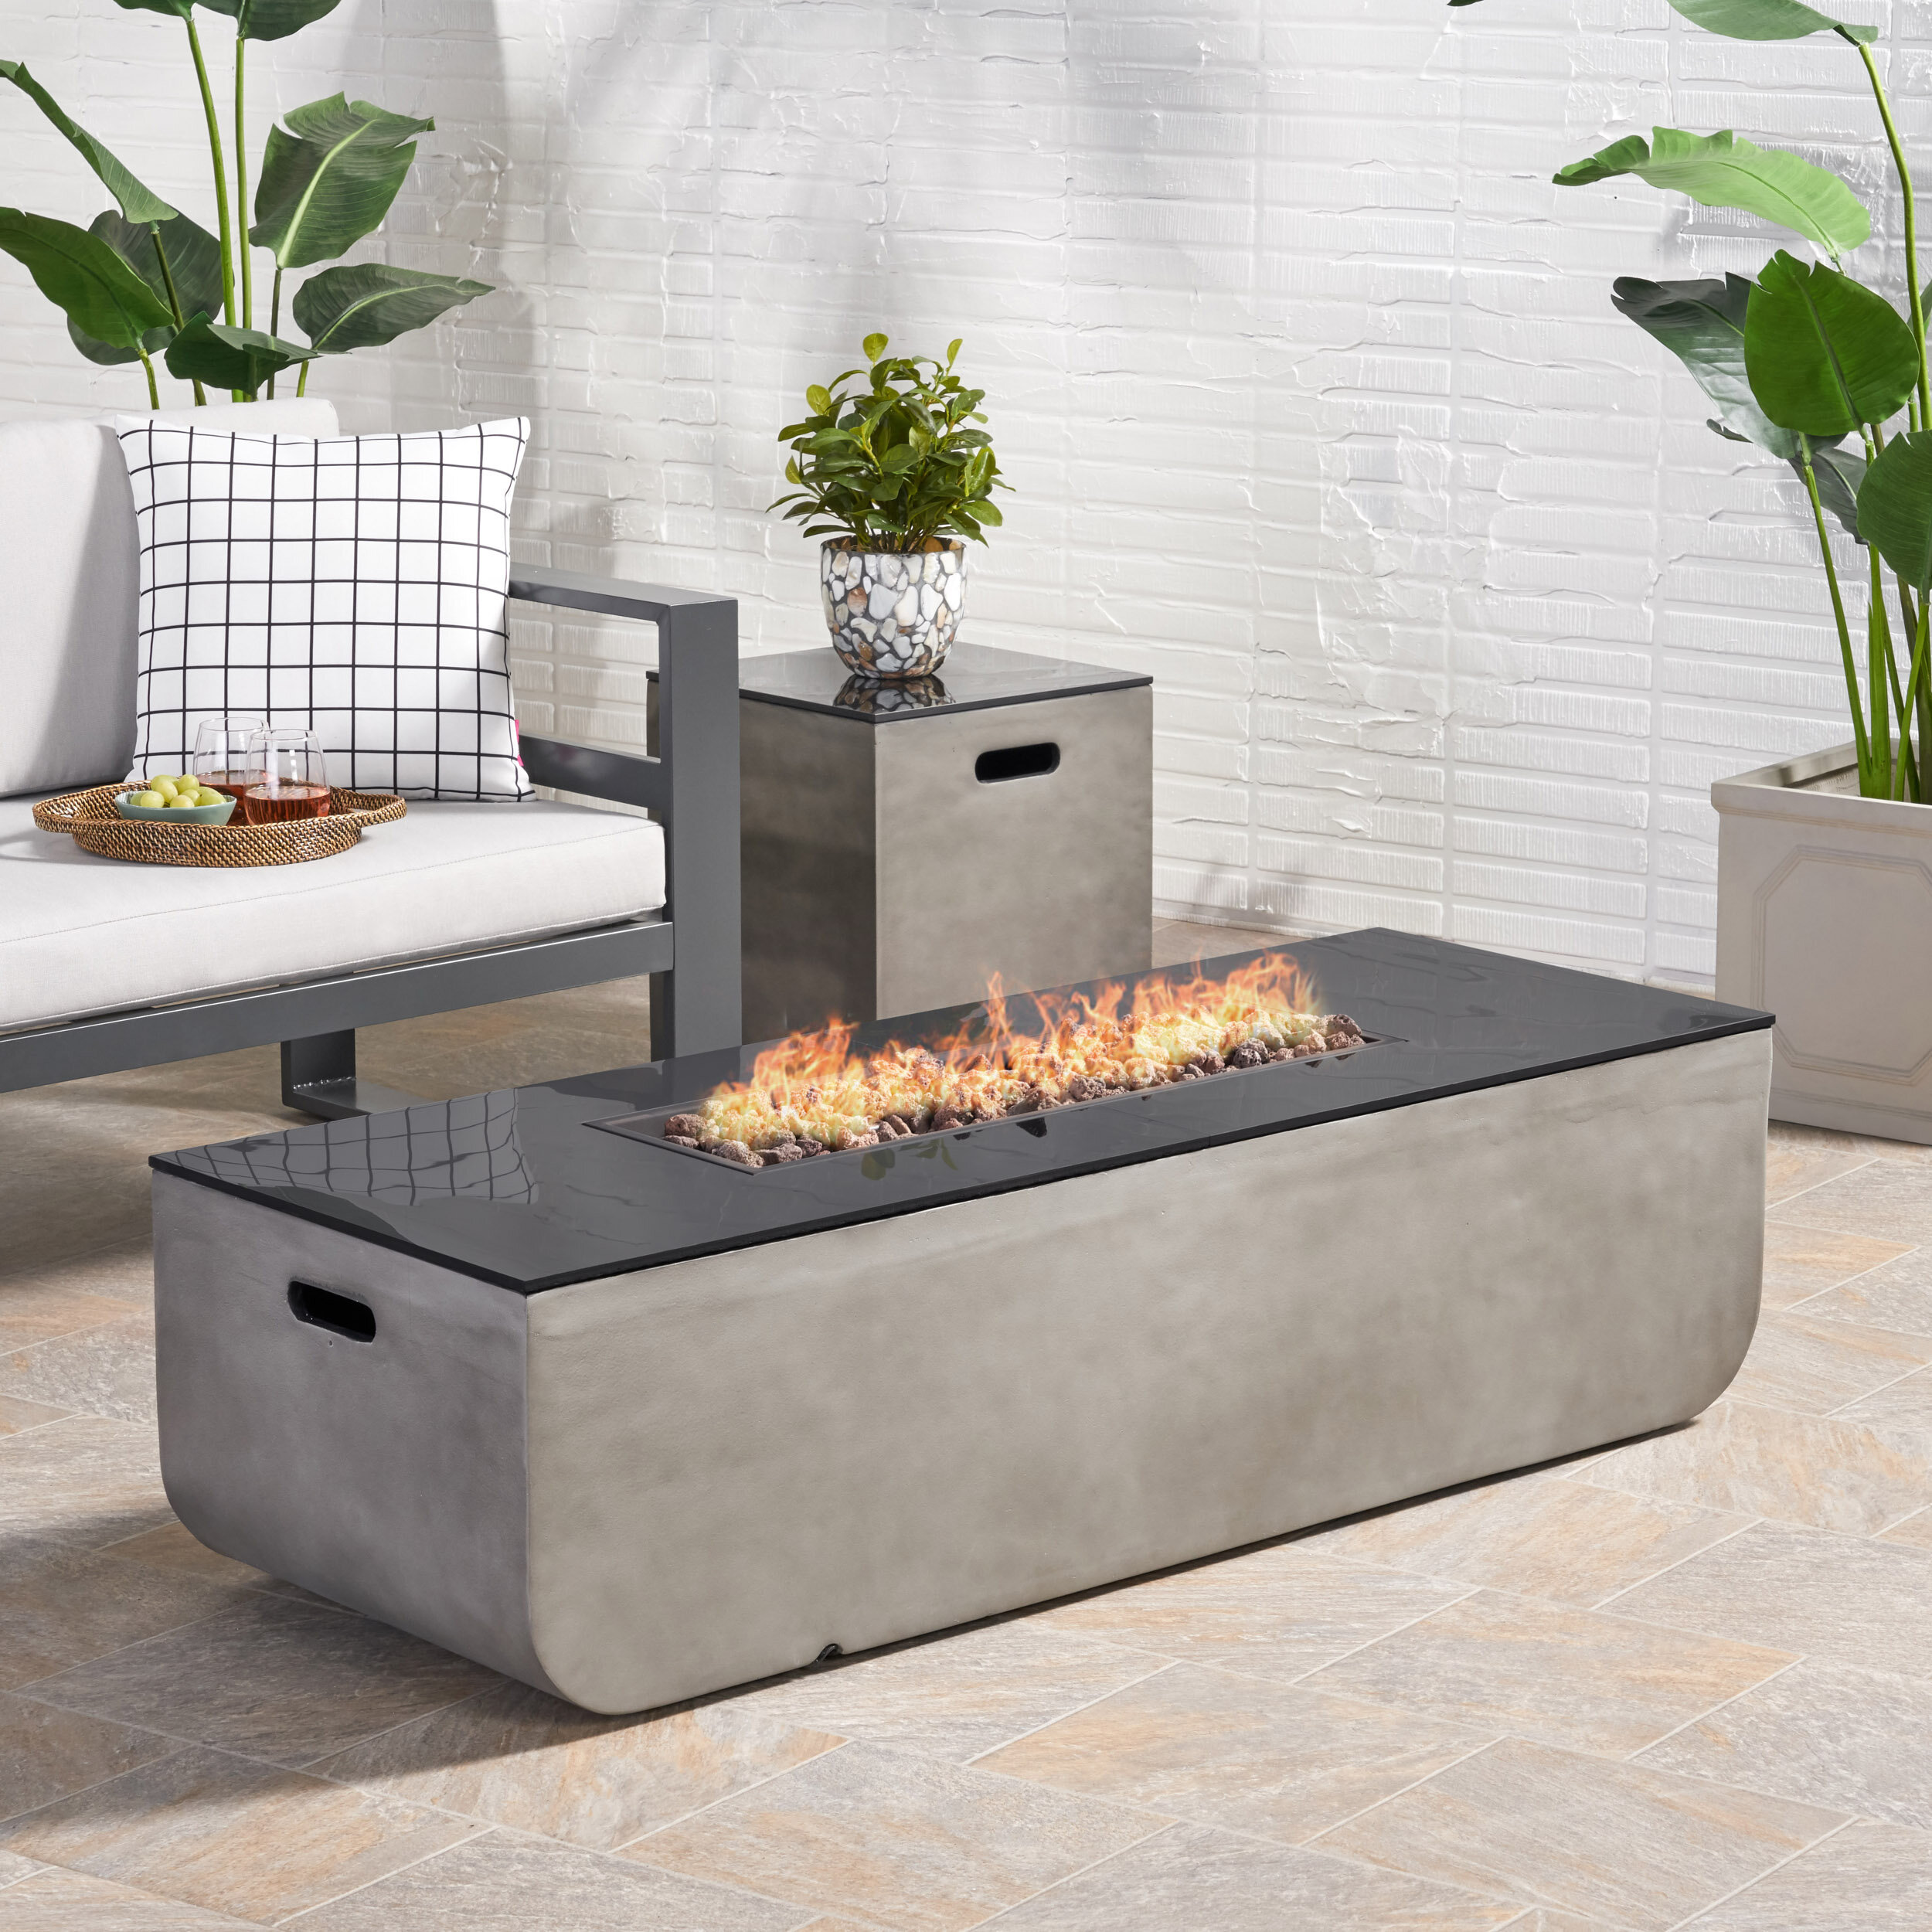 Image of: Luvana Outdoor With Tank Holder Concrete Propane Fire Pit Reviews Joss Main